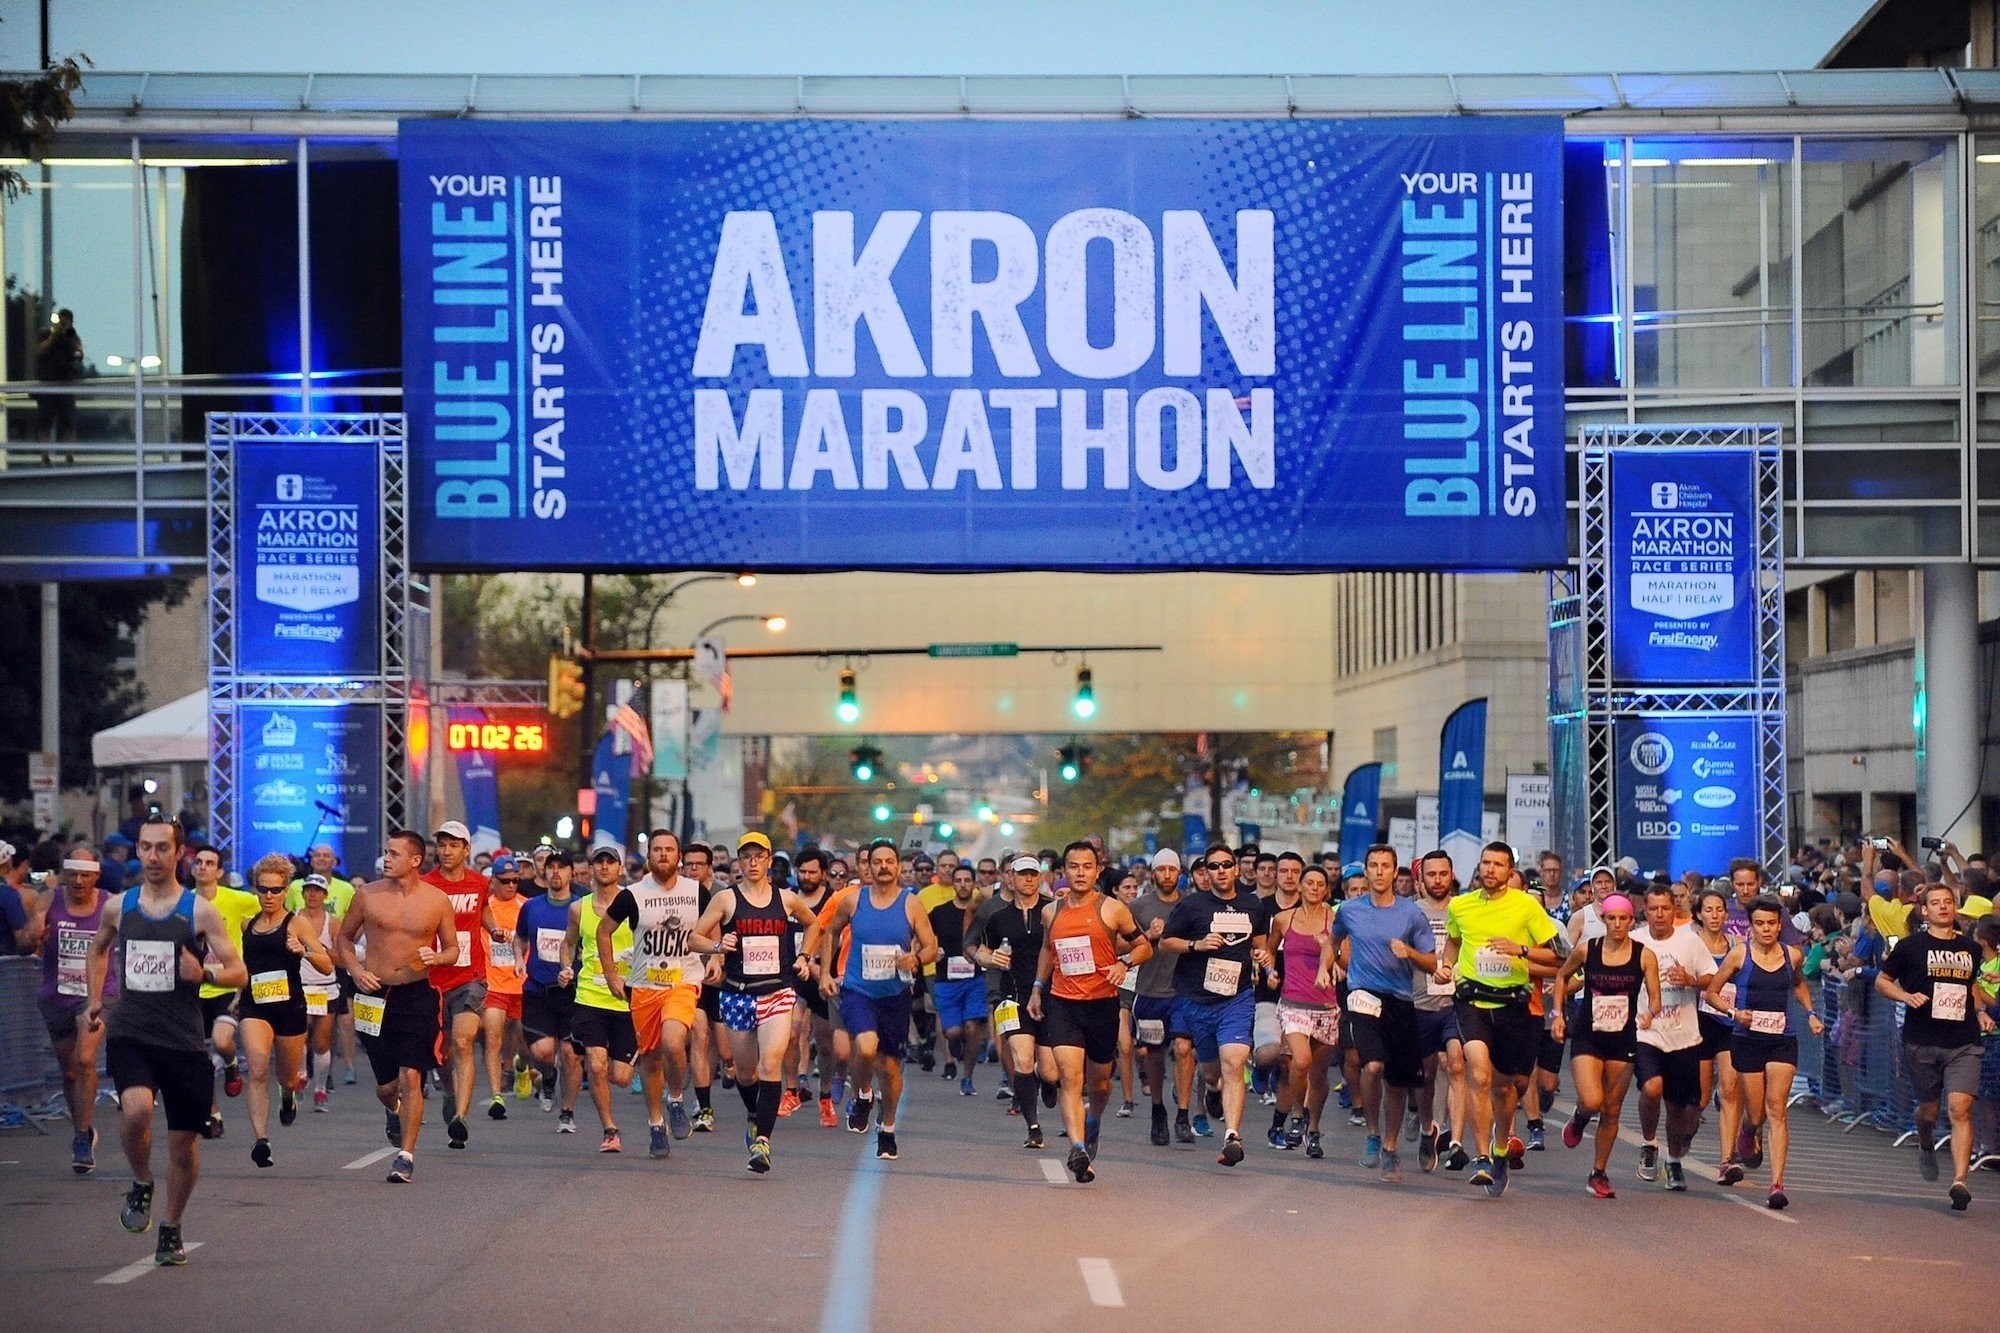 For the first time ever, Akron Marathon will be offering virtual race this year